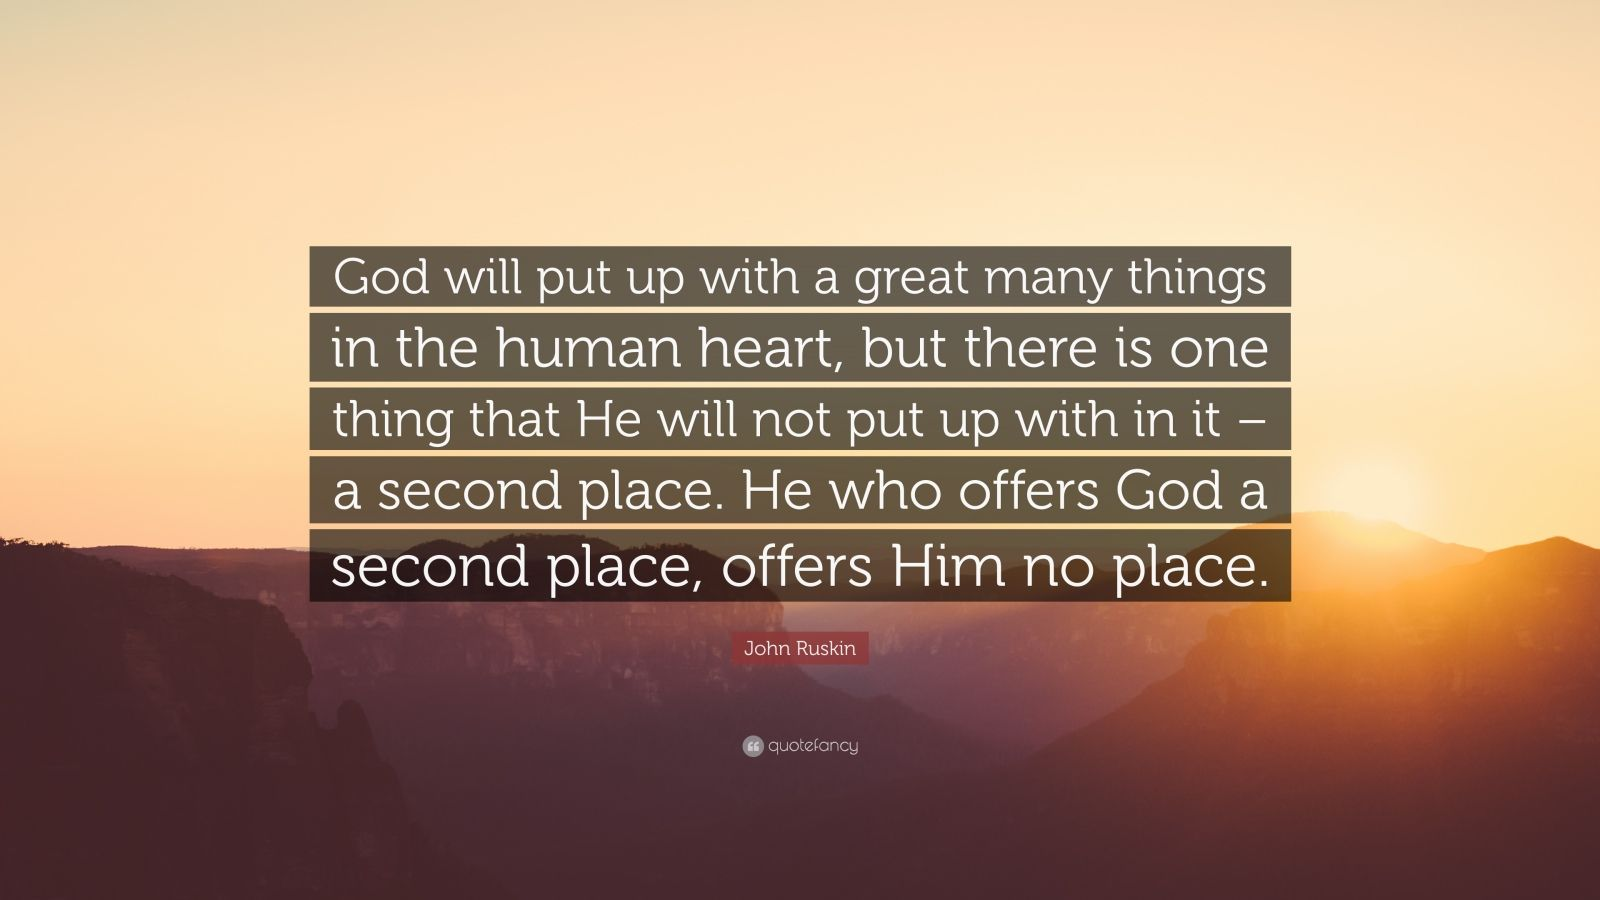 """John Ruskin Quote: """"God will put up with a great many things in the human heart, but there is one thing that He will not put up with in it – a second place. He who offers God a second place, offers Him no place."""""""